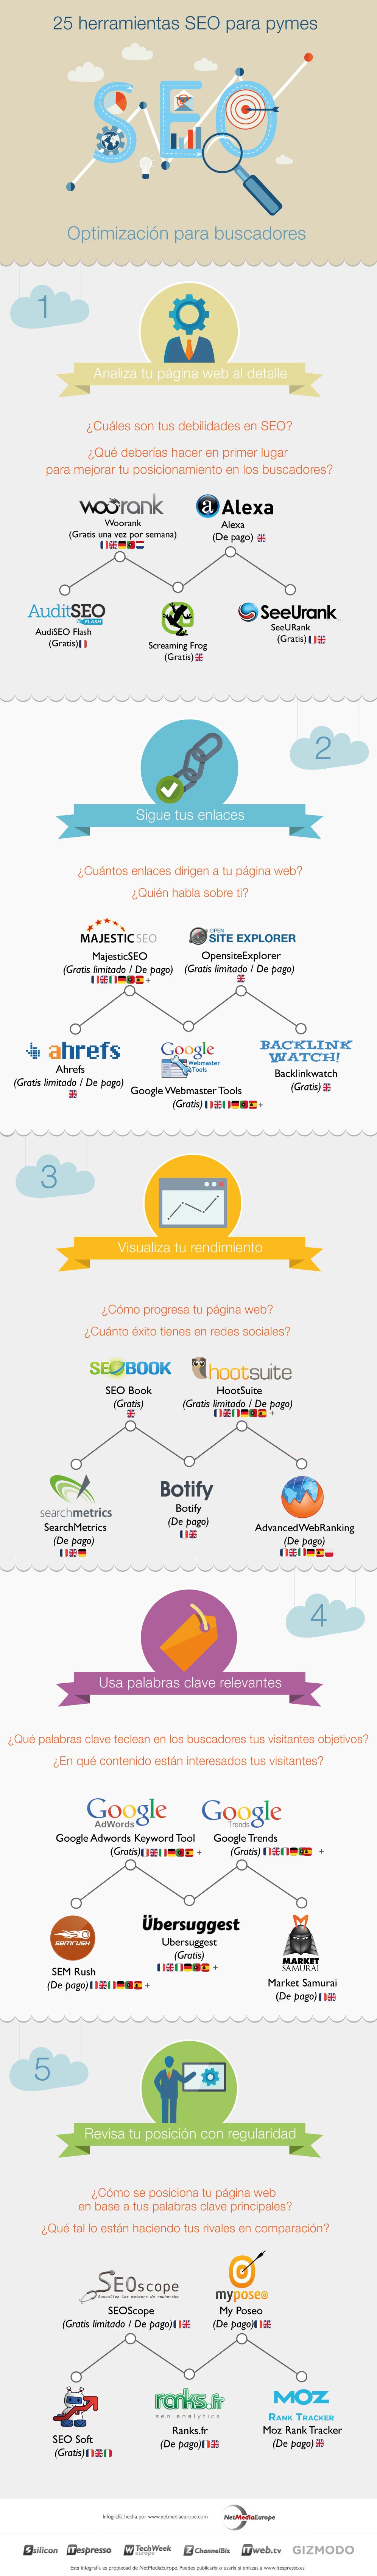 infographie_25outils_seo_ES